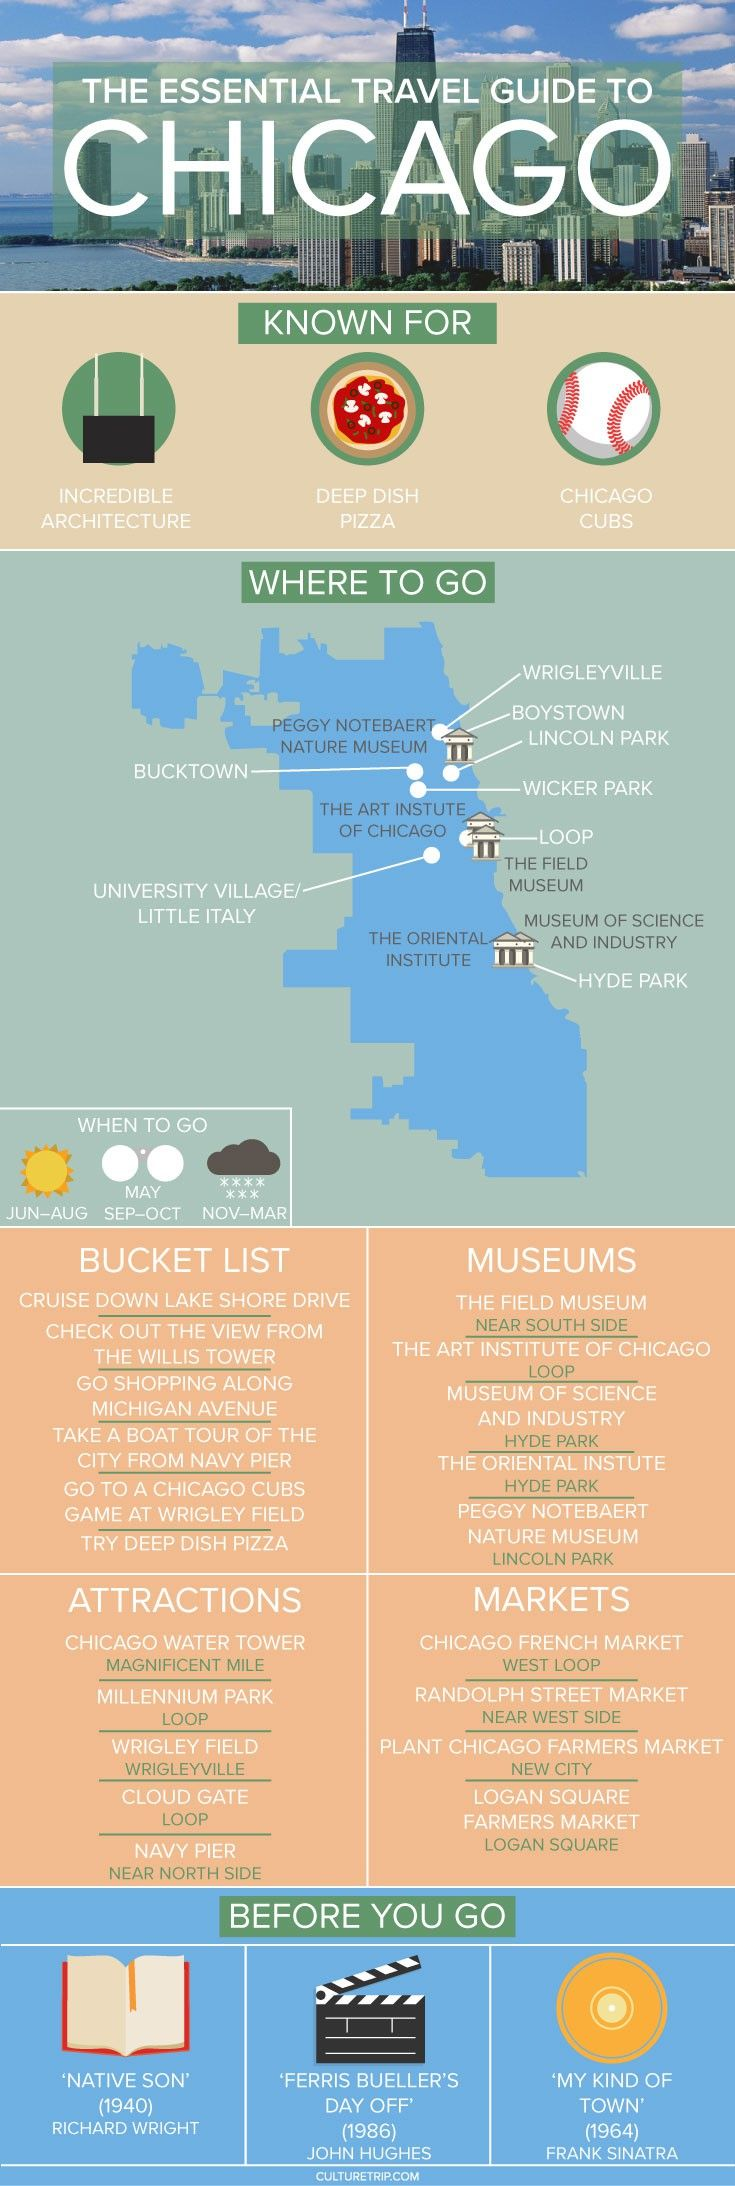 Travel infographic – The Essential Travel Guide to Chicago (Infographic)